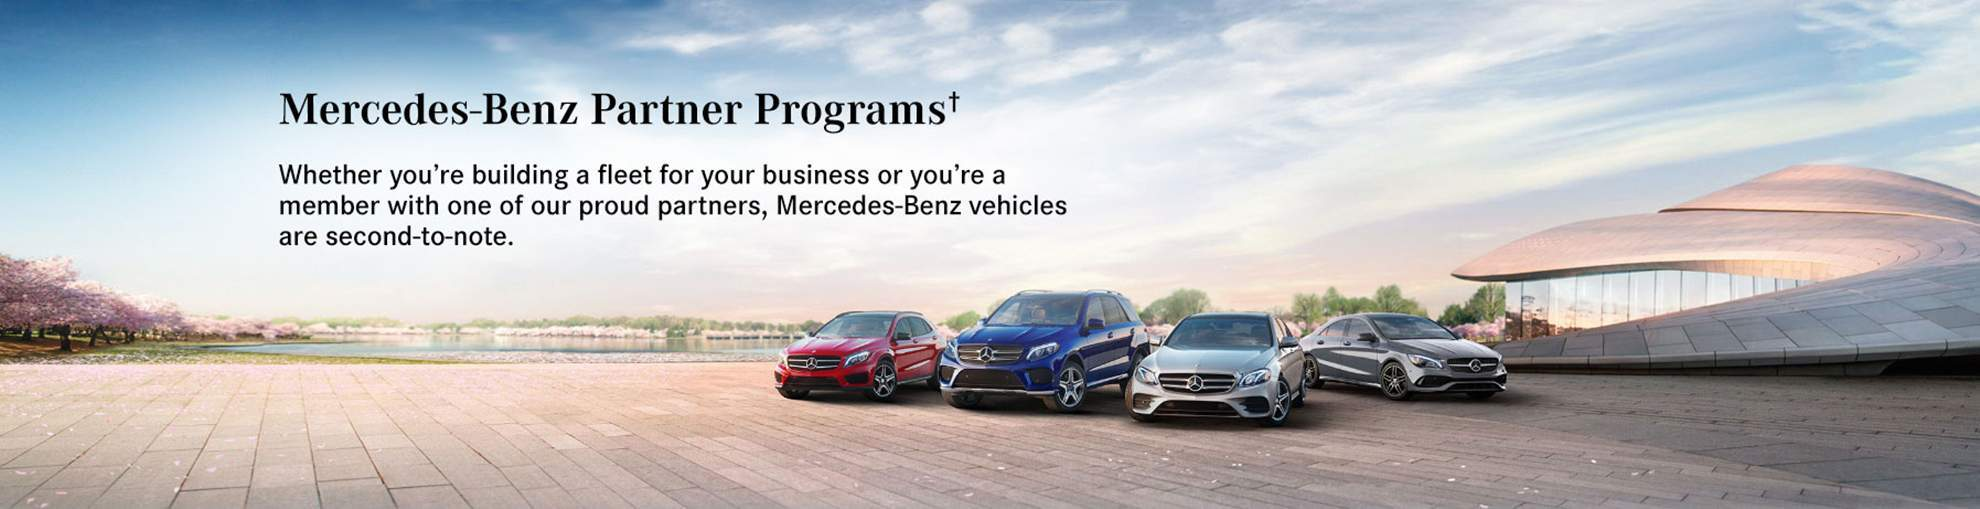 Mercedes-Benz Partner Programs - Novi, MI - Mercedes-Benz of Novi